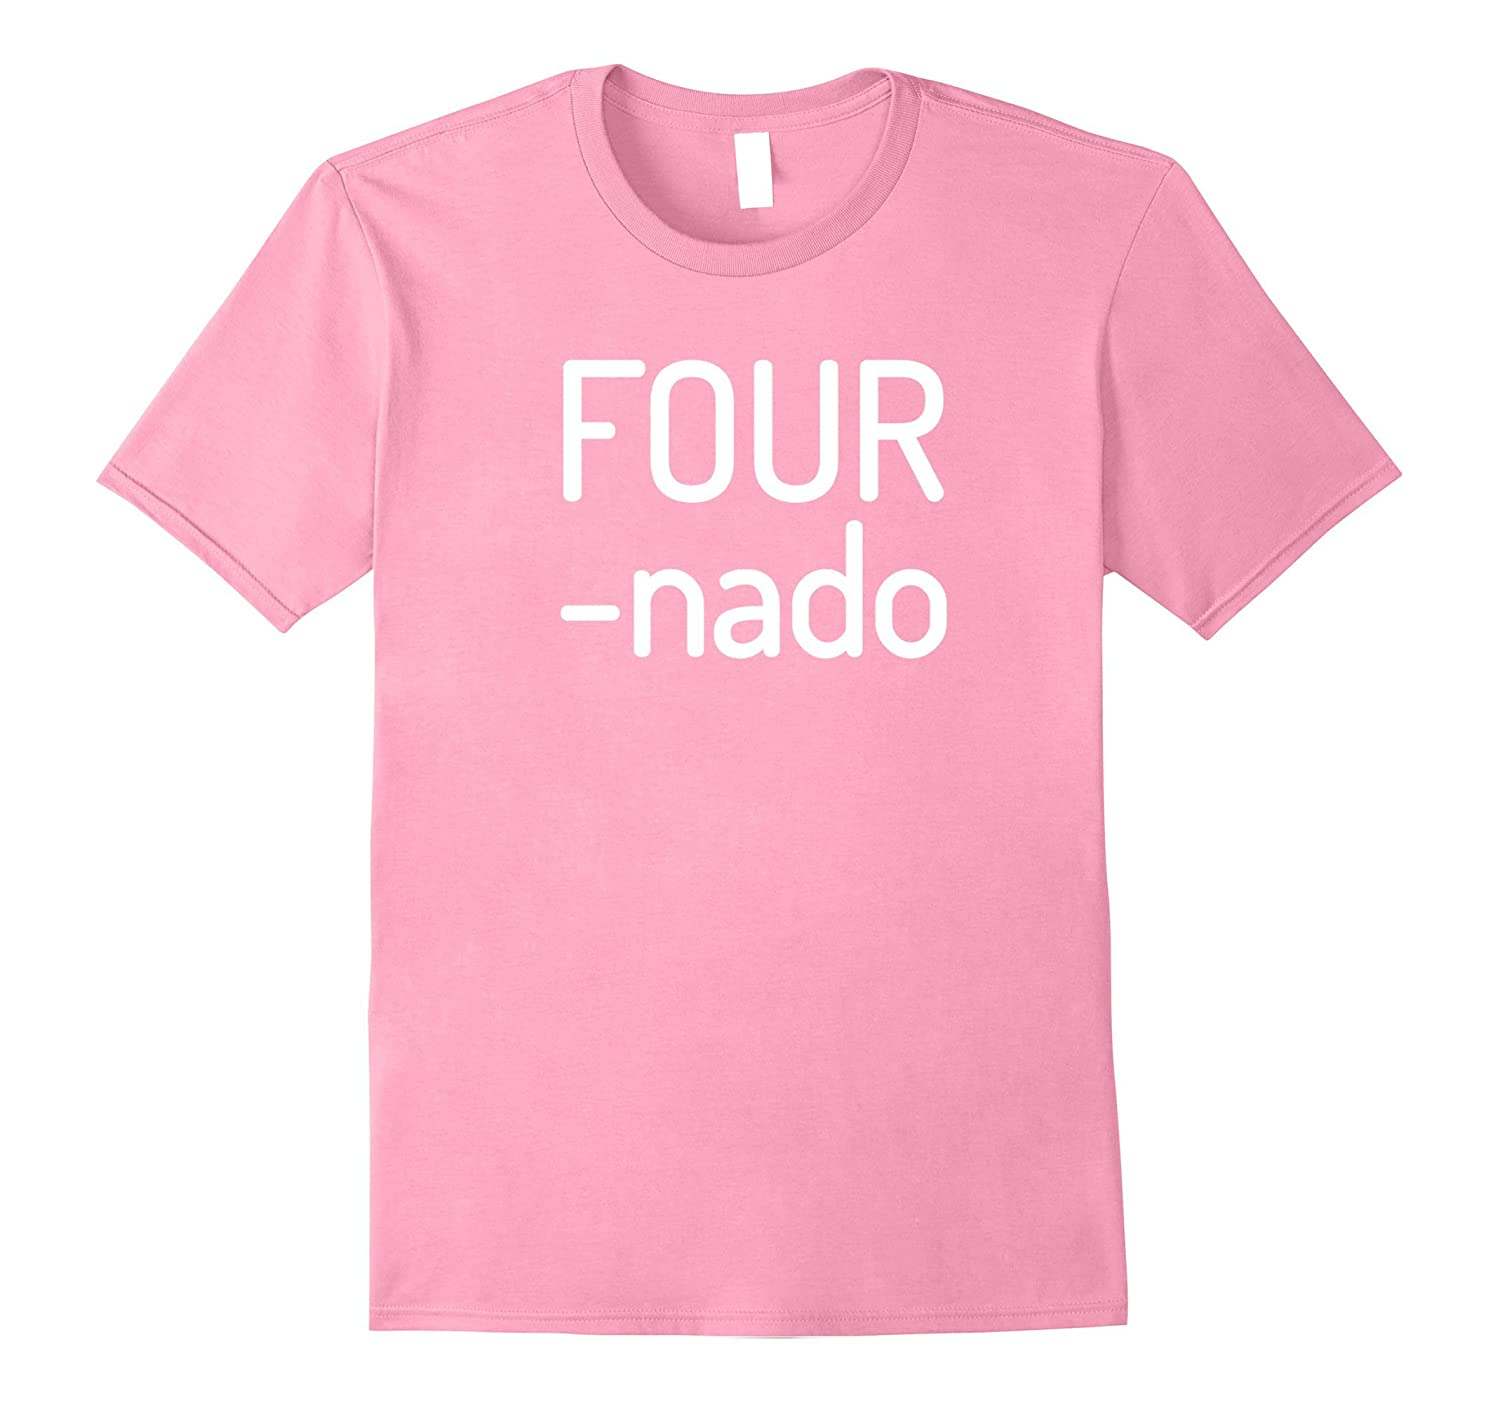 Kids Fournado Shirt Four Year Old Birthday Gift  Present-Vaci